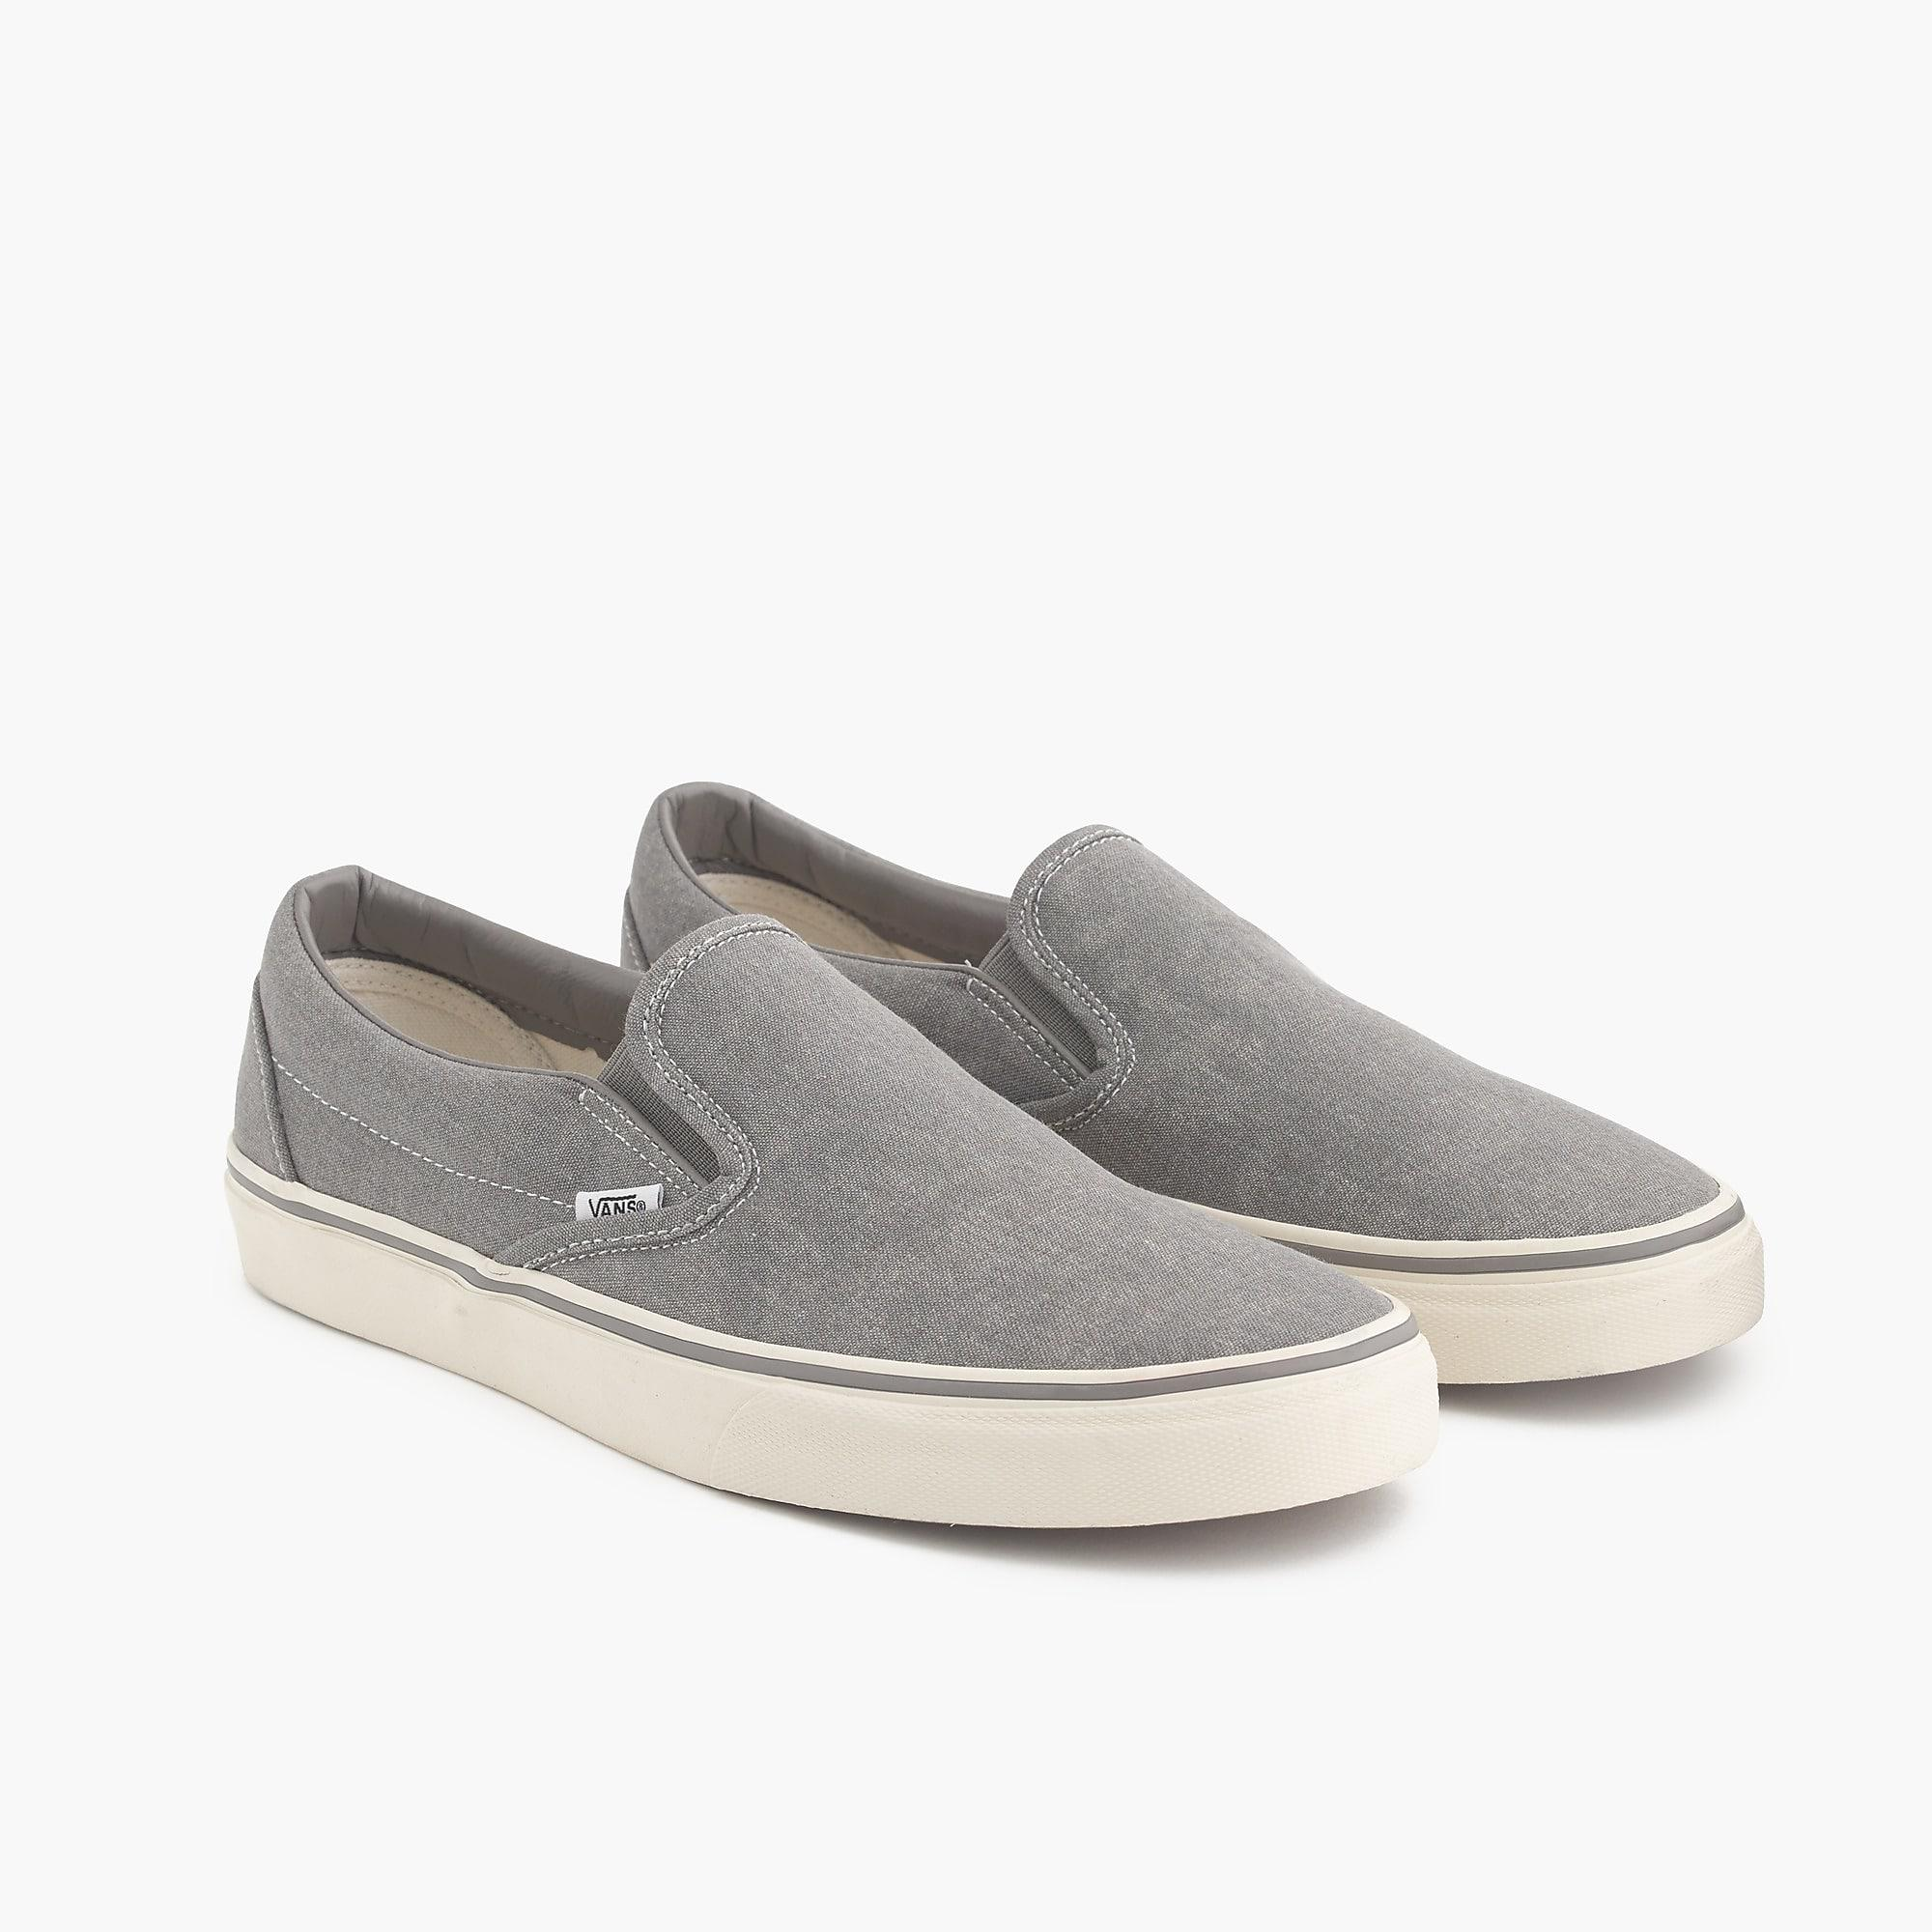 179a1a6c0039d8 Vans - Metallic Washed Canvas Classic Slip-on Sneakers for Men - Lyst. View  fullscreen